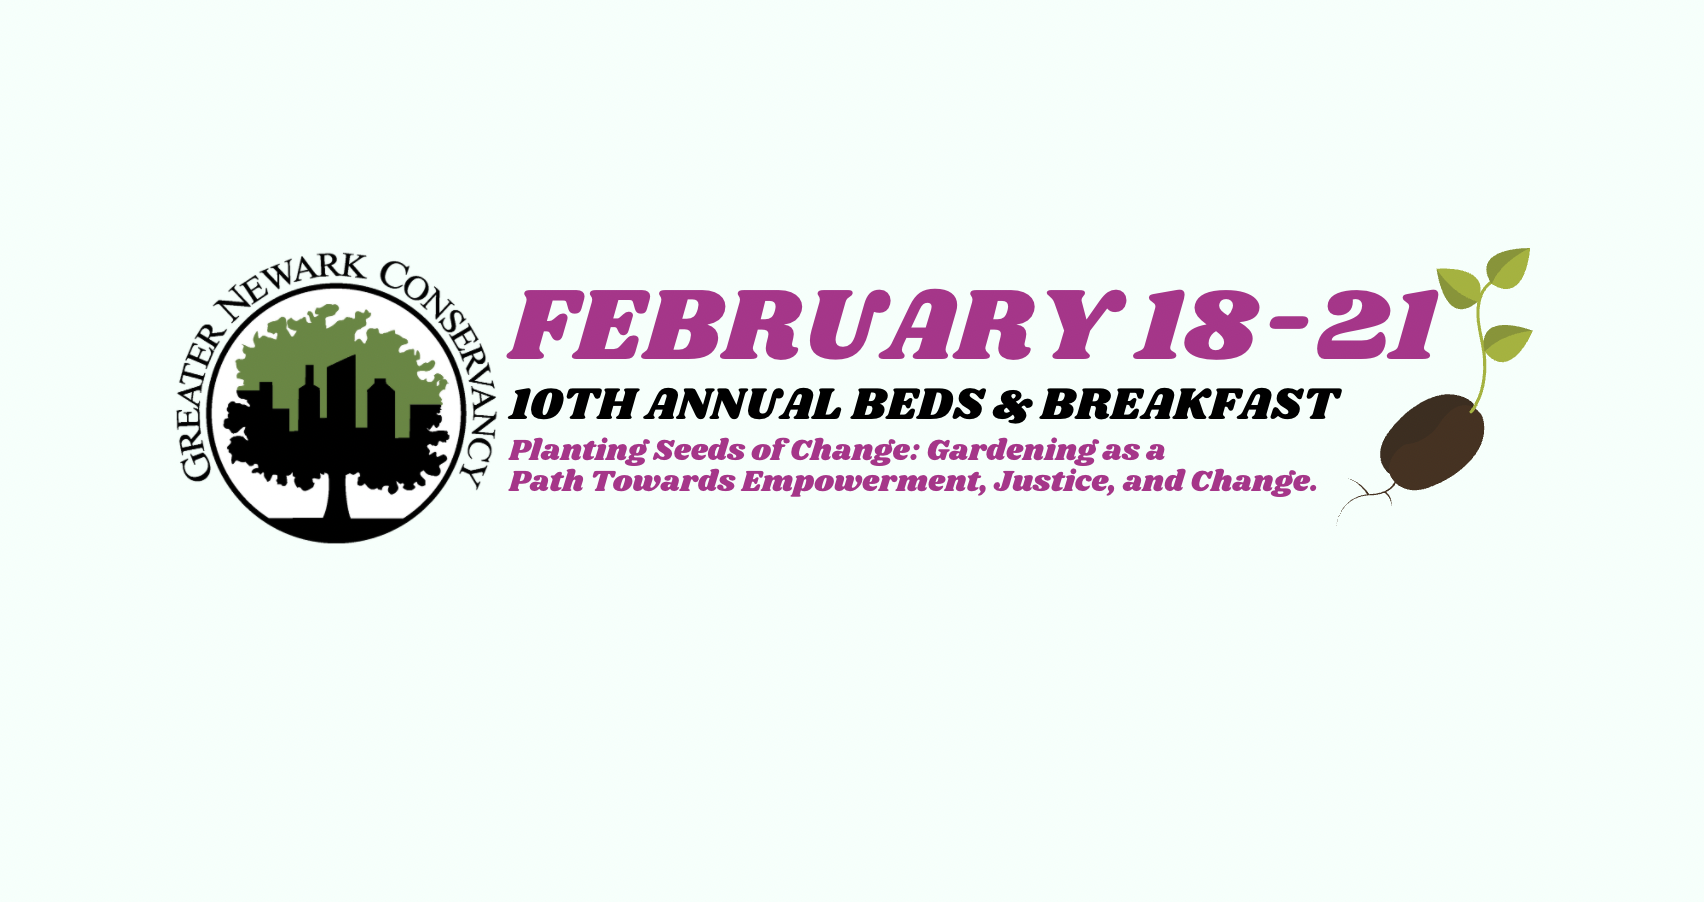 10th Annual Beds & Breakfast